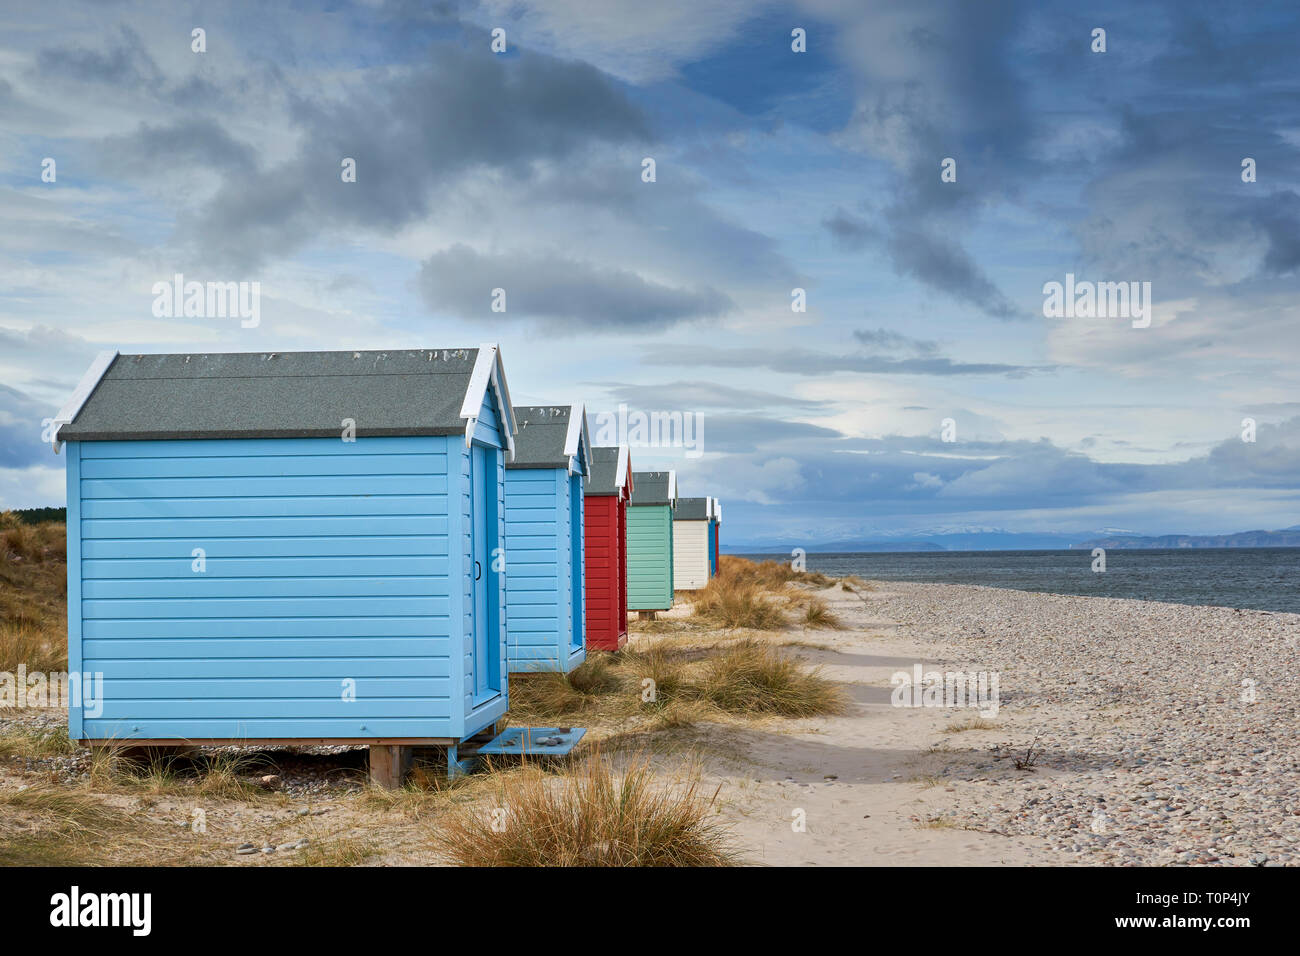 FINDHORN BEACH MORAY FIRTH SCOTLAND PASTEL COLOURED CHALETS OR BEACH HUTS ON PEBBLE BEACH WITH SEA GRASS SNOW OVER THE HILLS AND BLACK ISLE Stock Photo